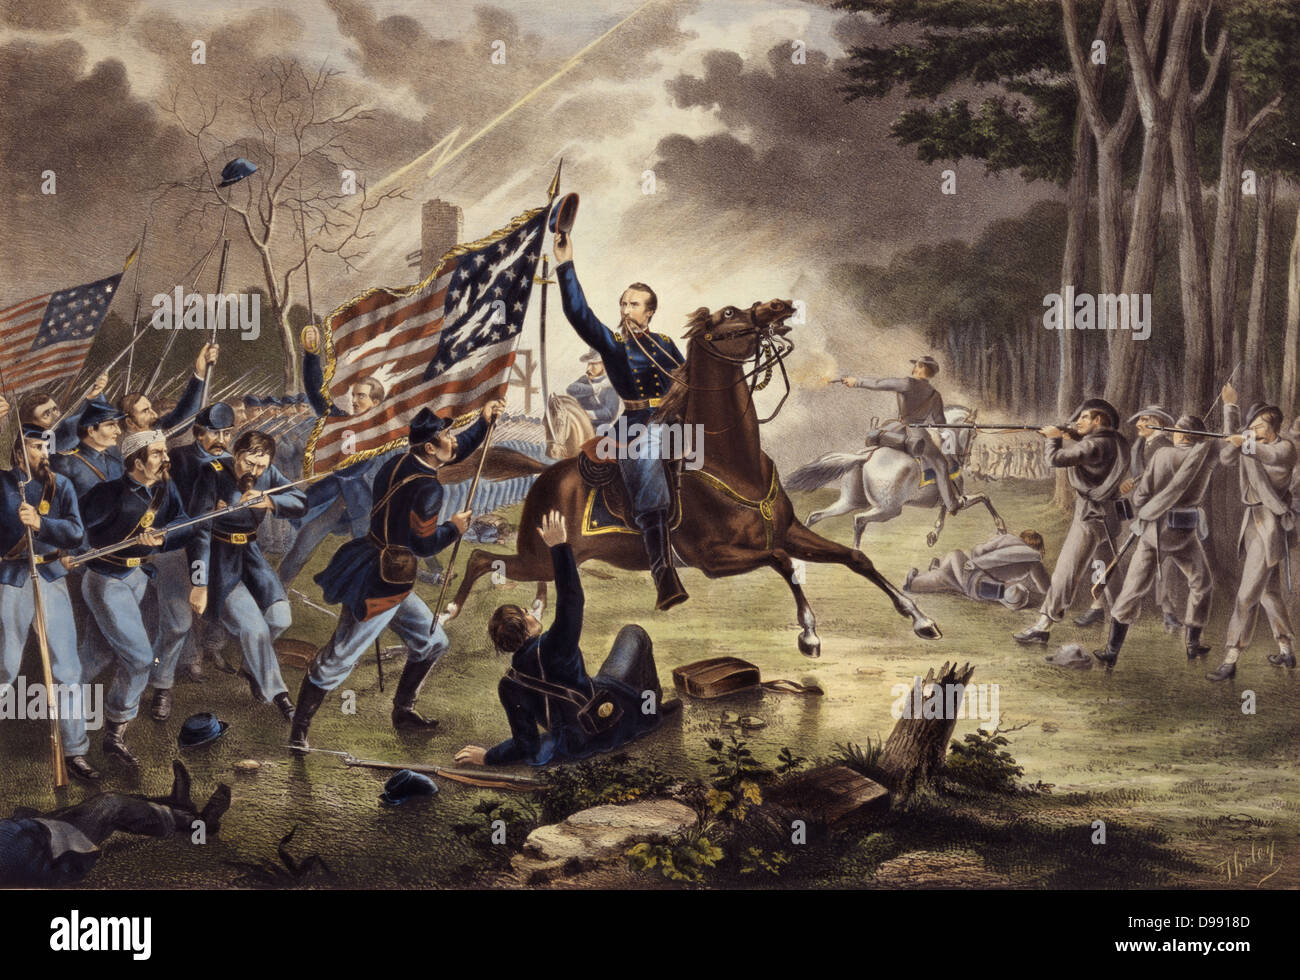 details of the american civil war from 1861 American civil war, also called war between the states, four-year war (1861–65) between the united states and 11 southern states that seceded from the union and formed the confederate states of america.